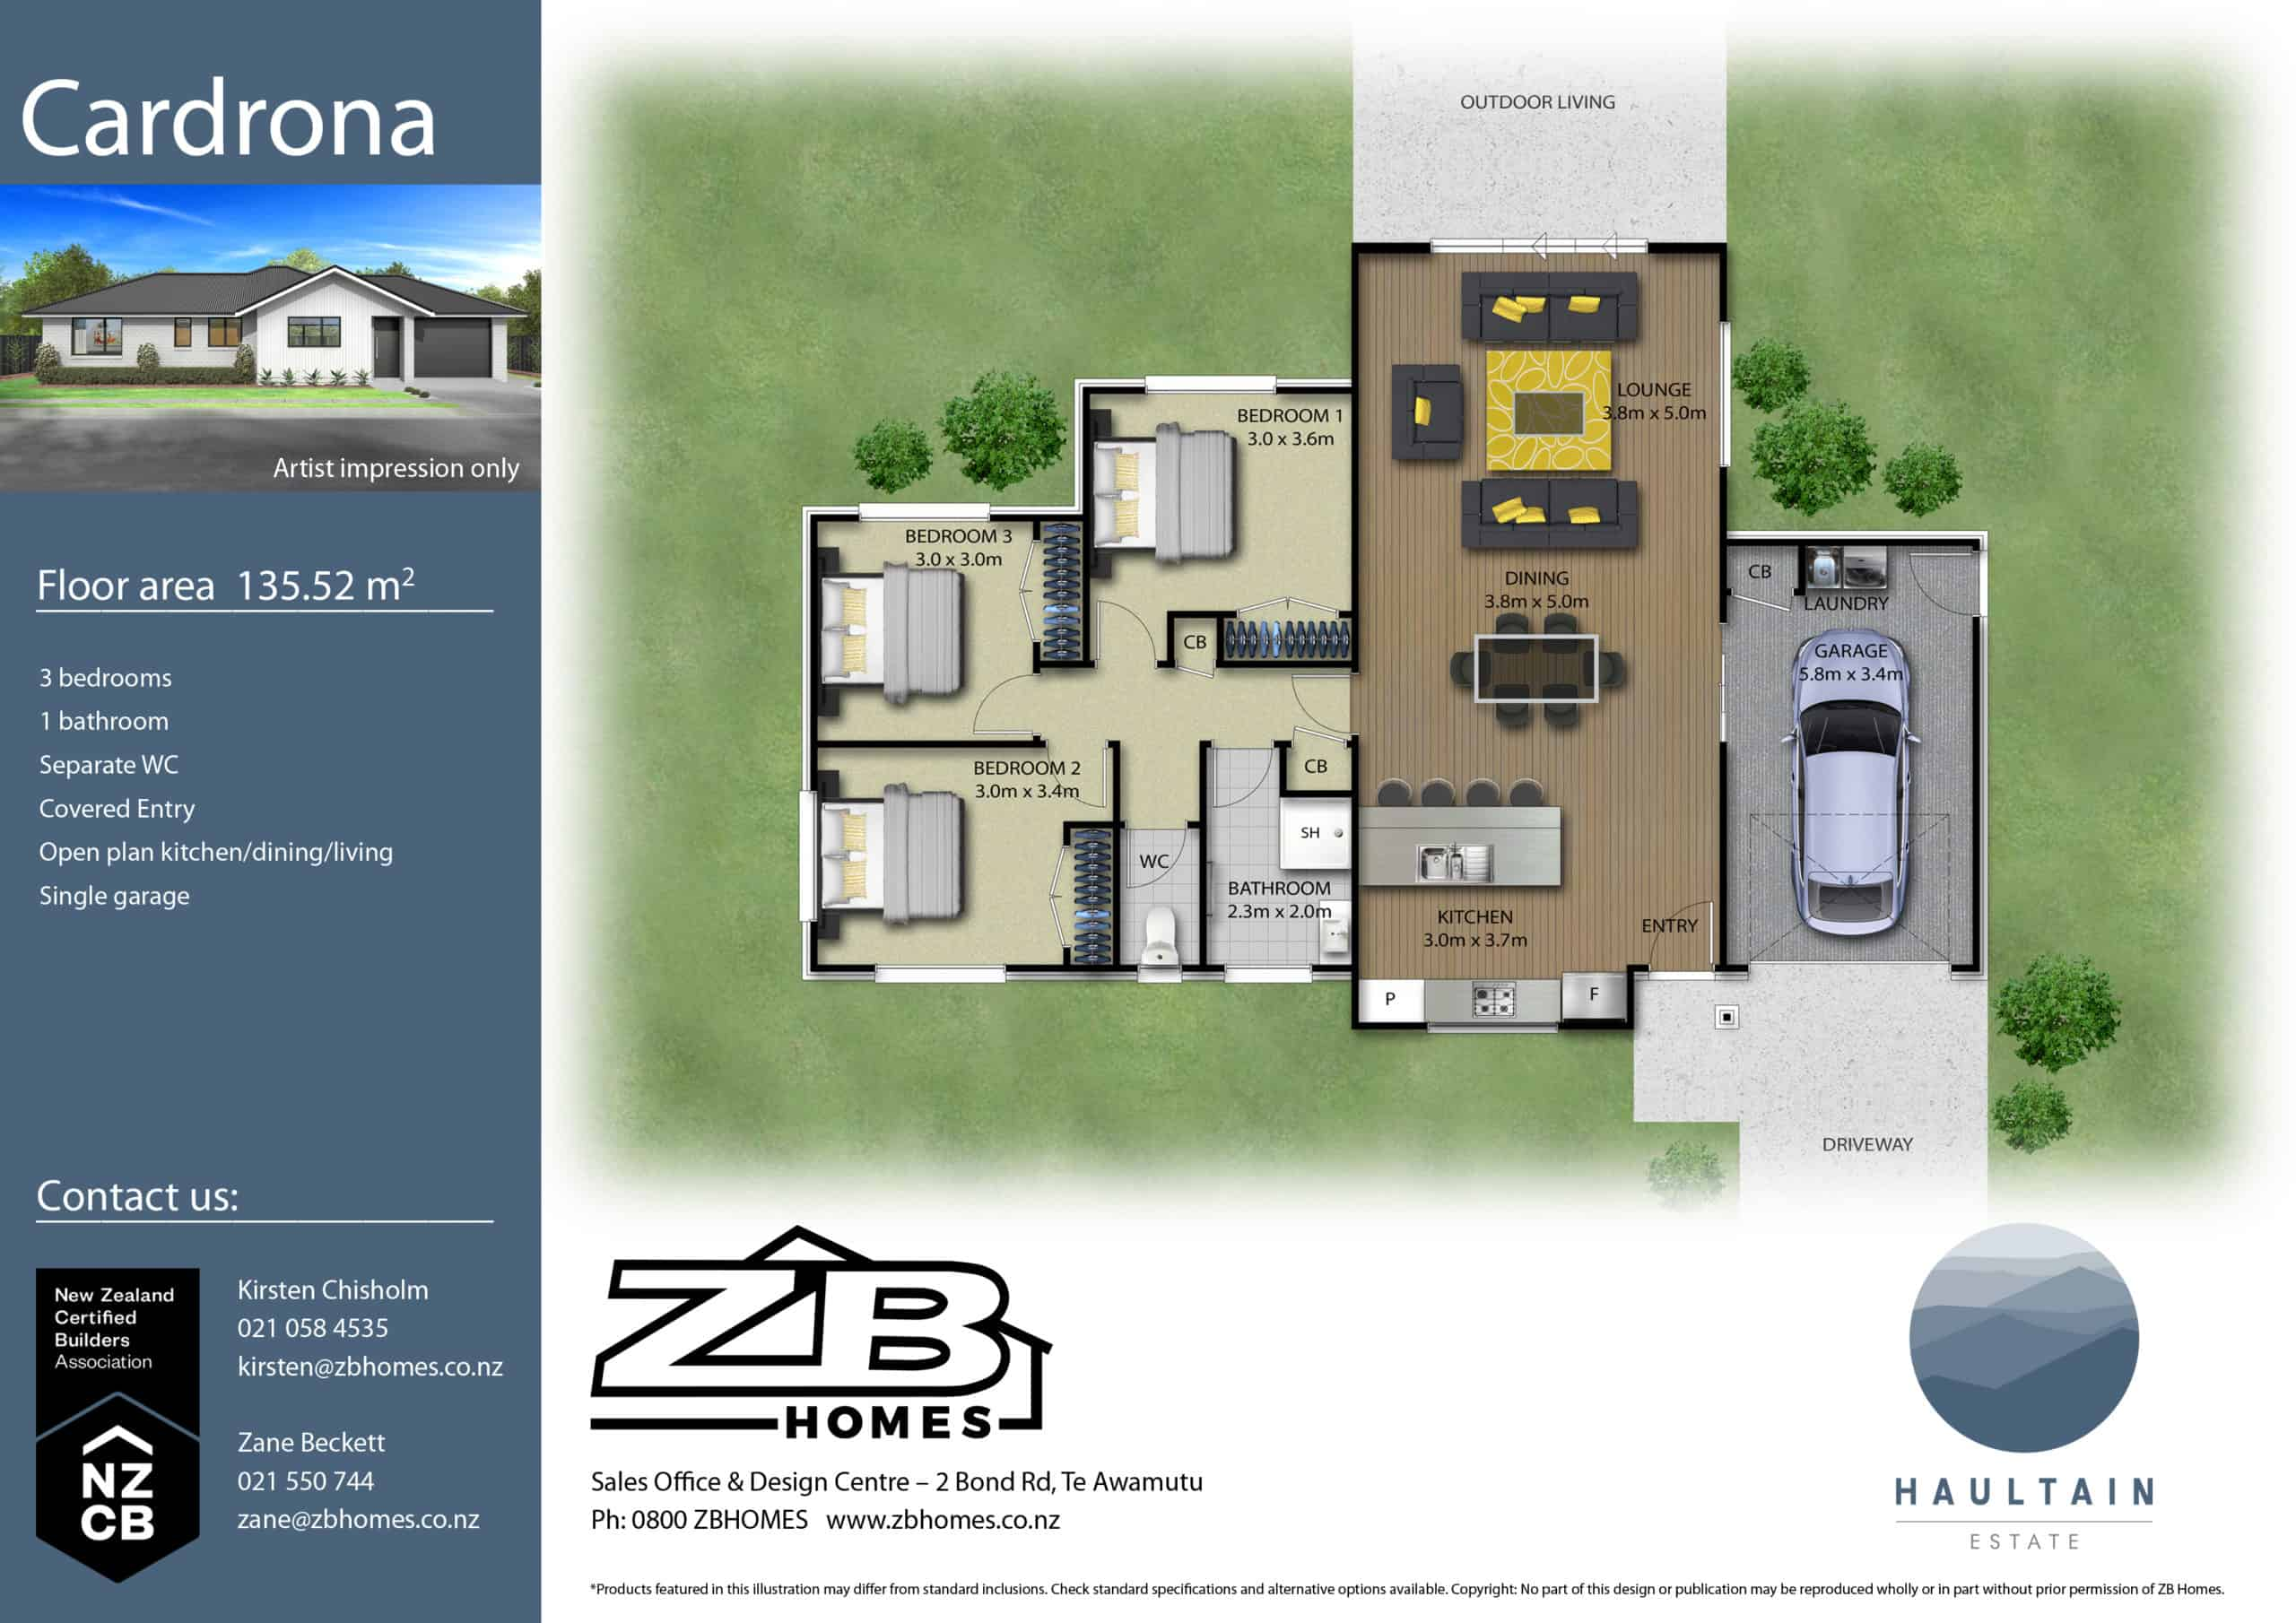 LOT 58 – House & Land Package